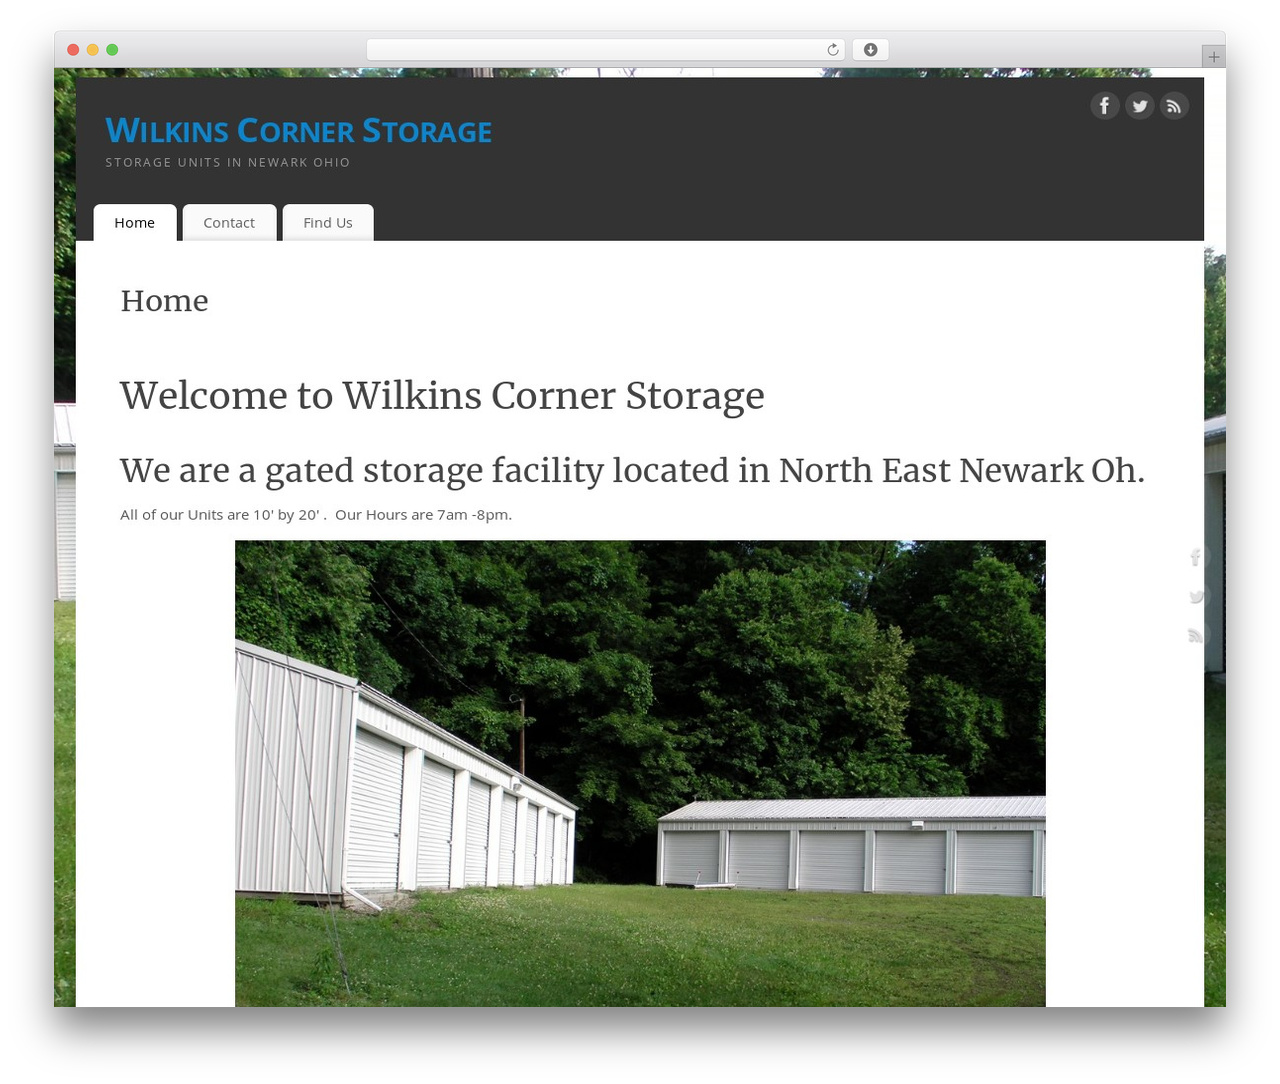 Storage Unit Newark Ohio Mantra Free Wp Theme By Cryout Creations Wilkinscornerstorage